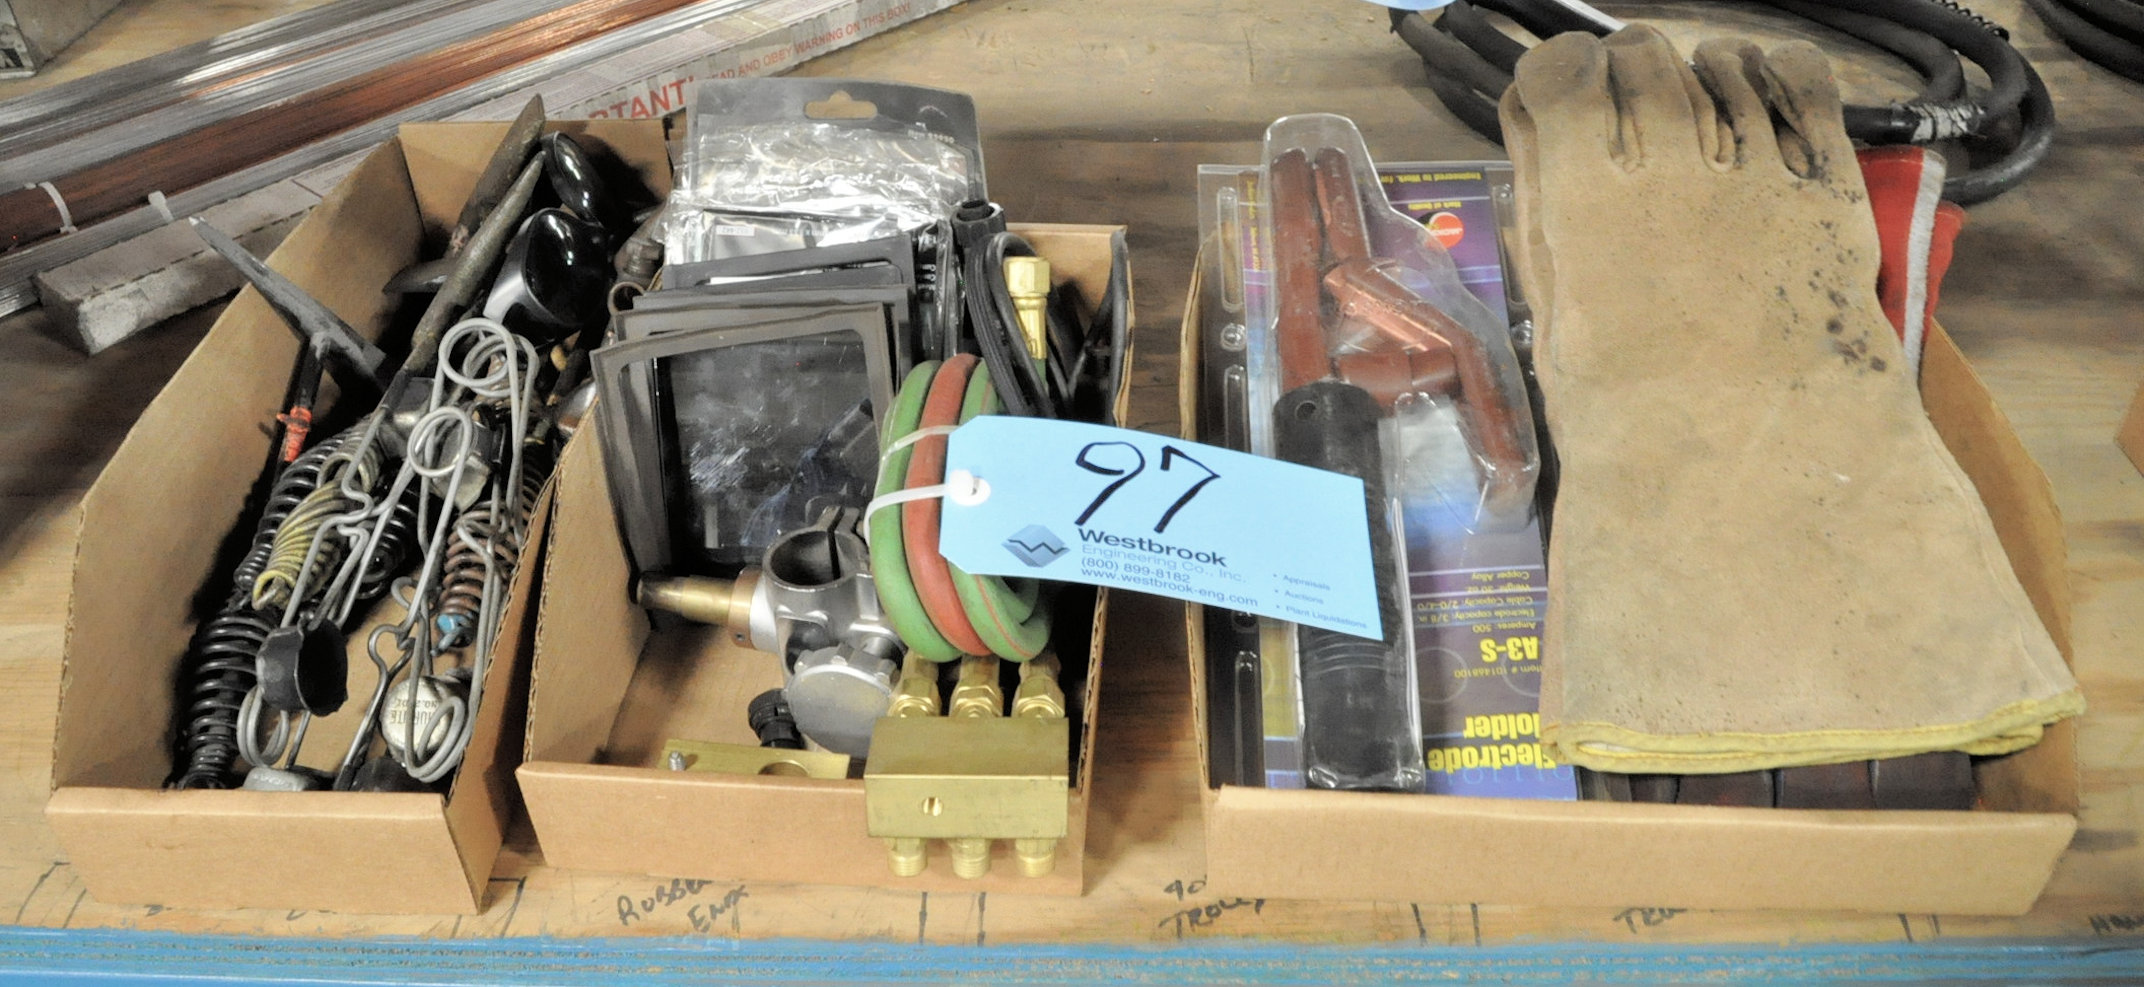 Lot-Oxy/Acet and Arc Welding Supplies in (3) Boxes